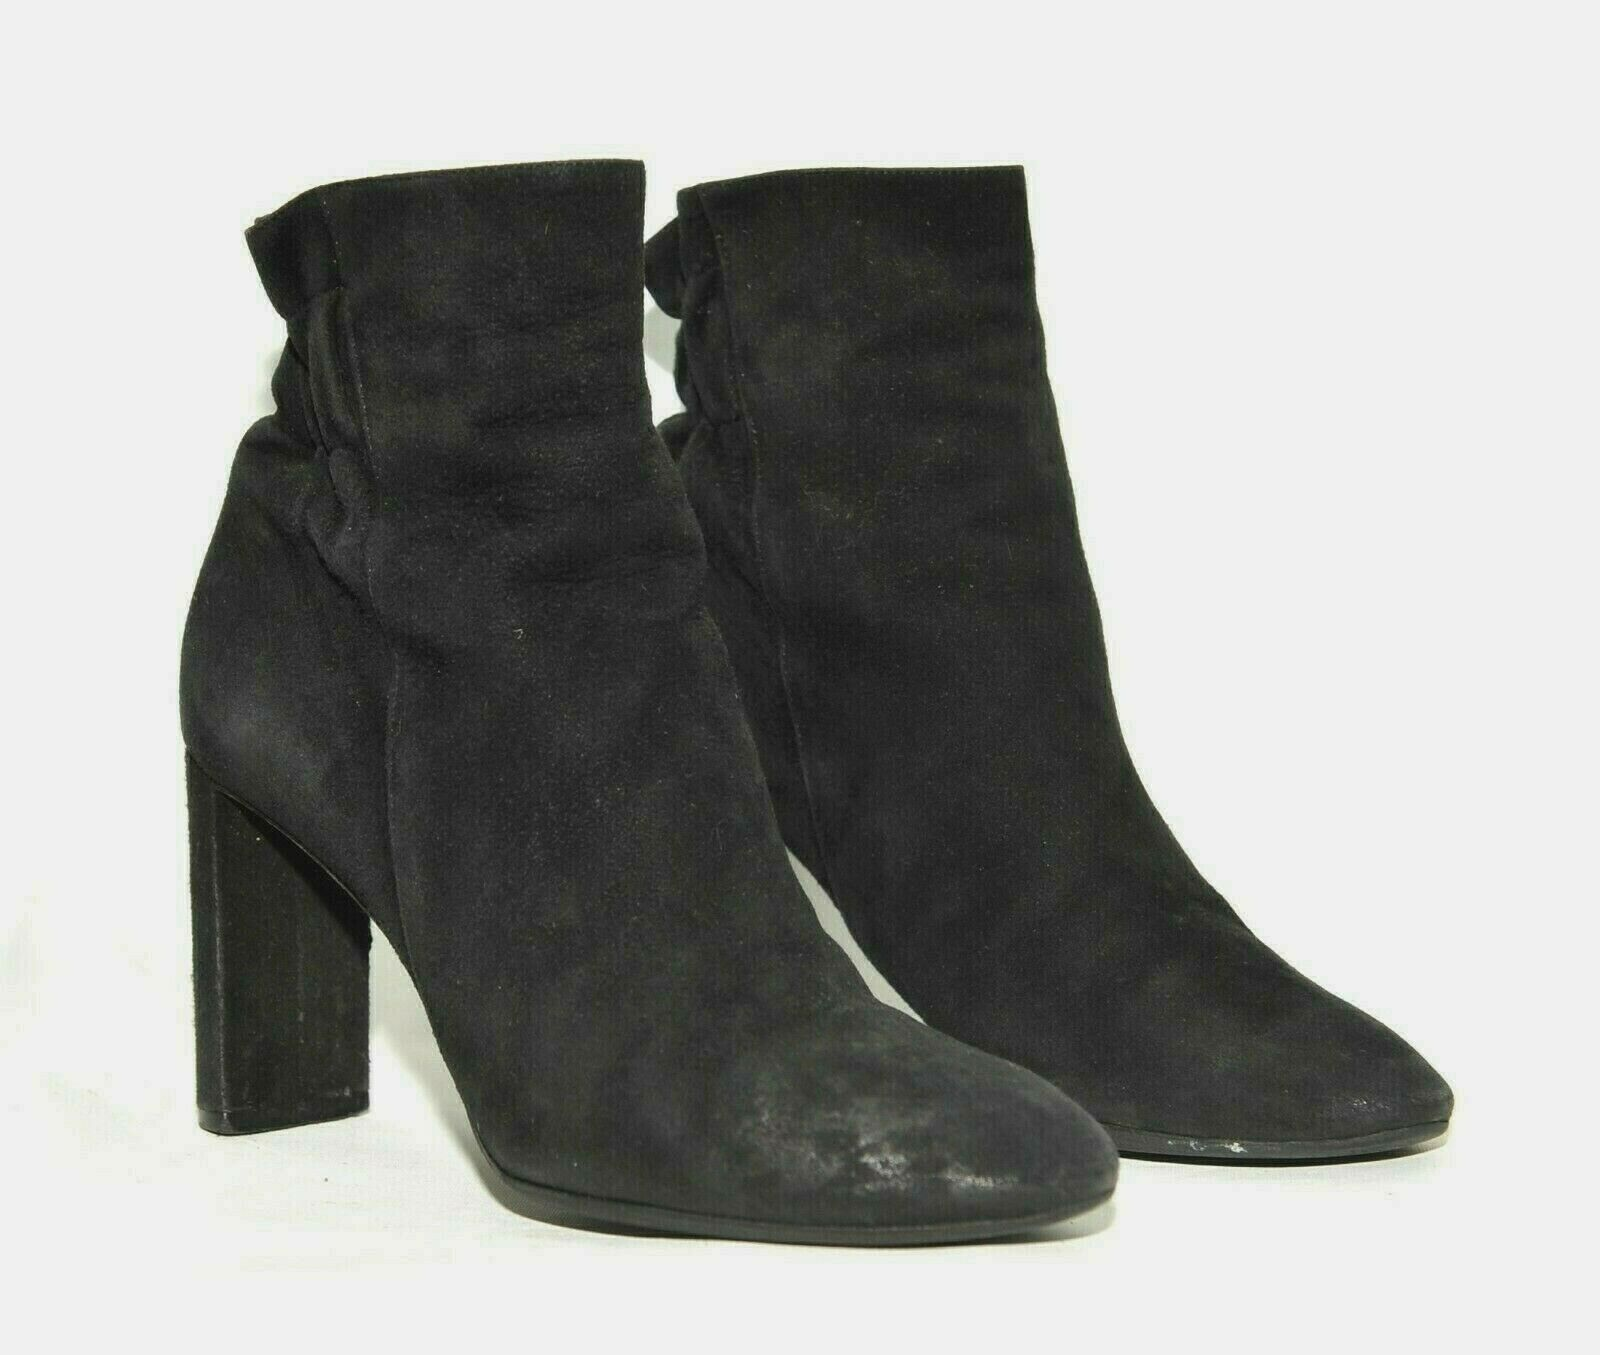 GREAT LADIES DIOR BLACK SUEDE ANKLE BOOTS LEATHER SIZE UK 4 EU 37